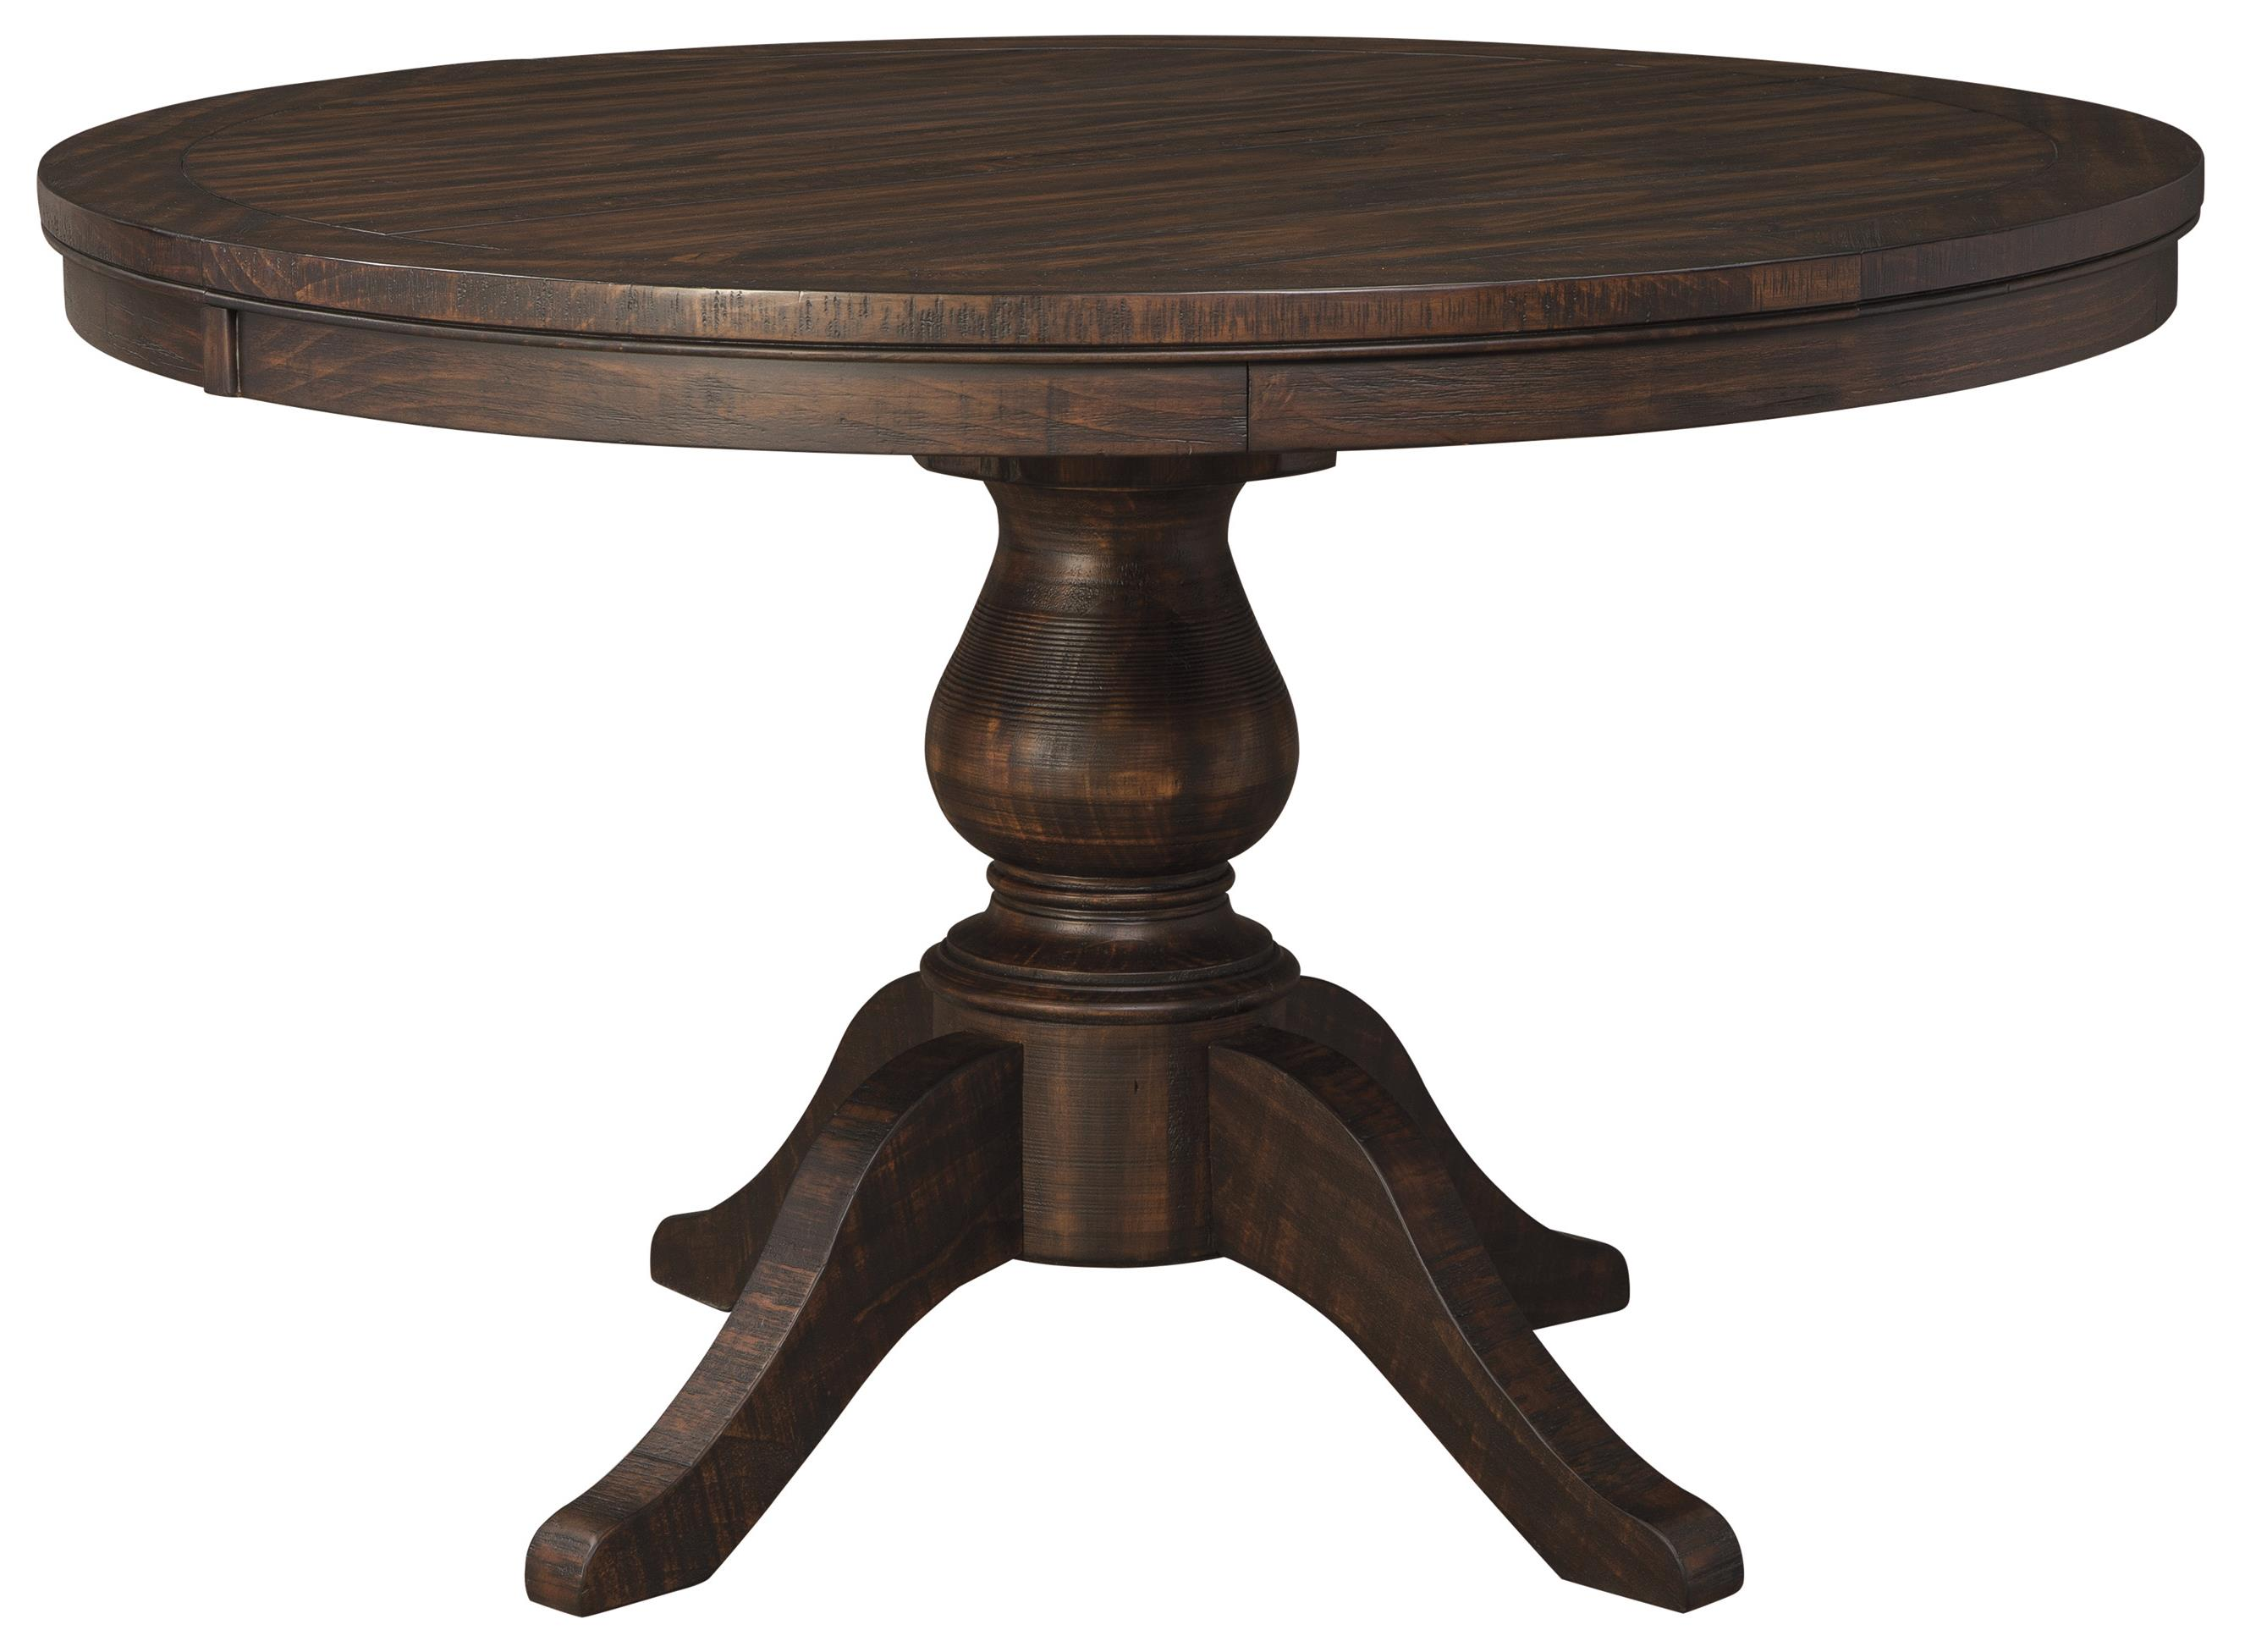 Solid wood pine round dining room pedestal extension table for Best wood for dining table